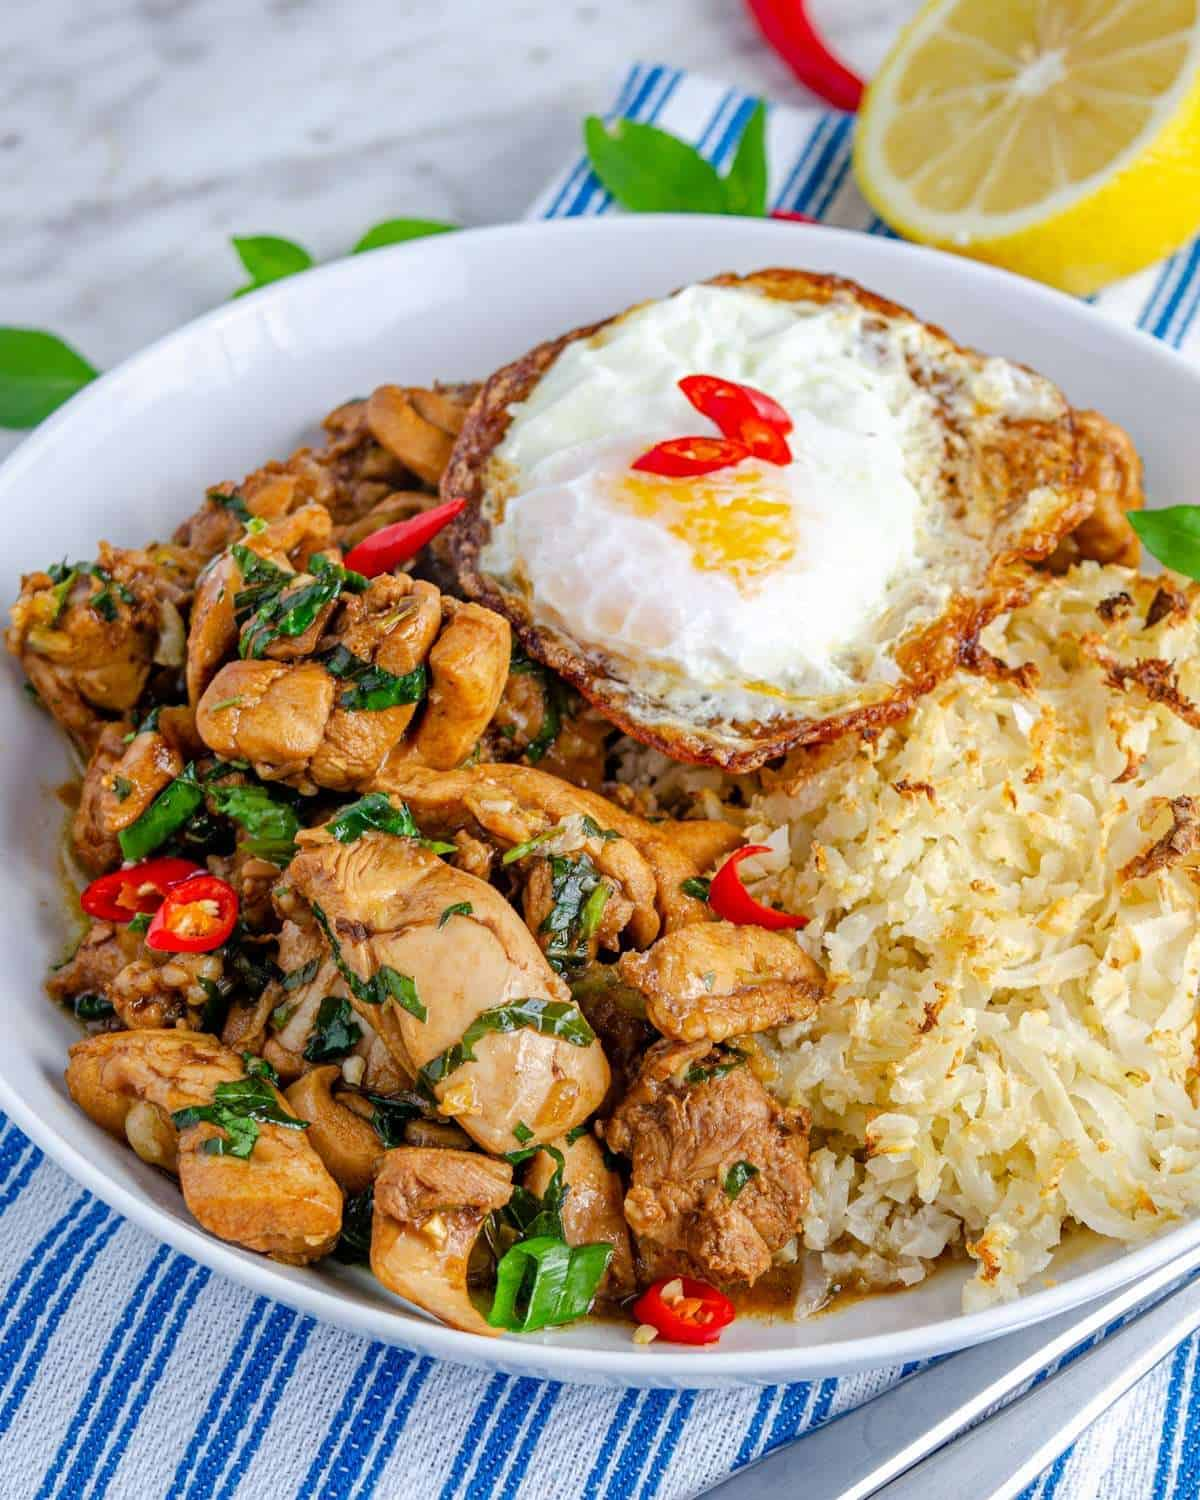 A bowlful os low carb Thai basil chicken with sides